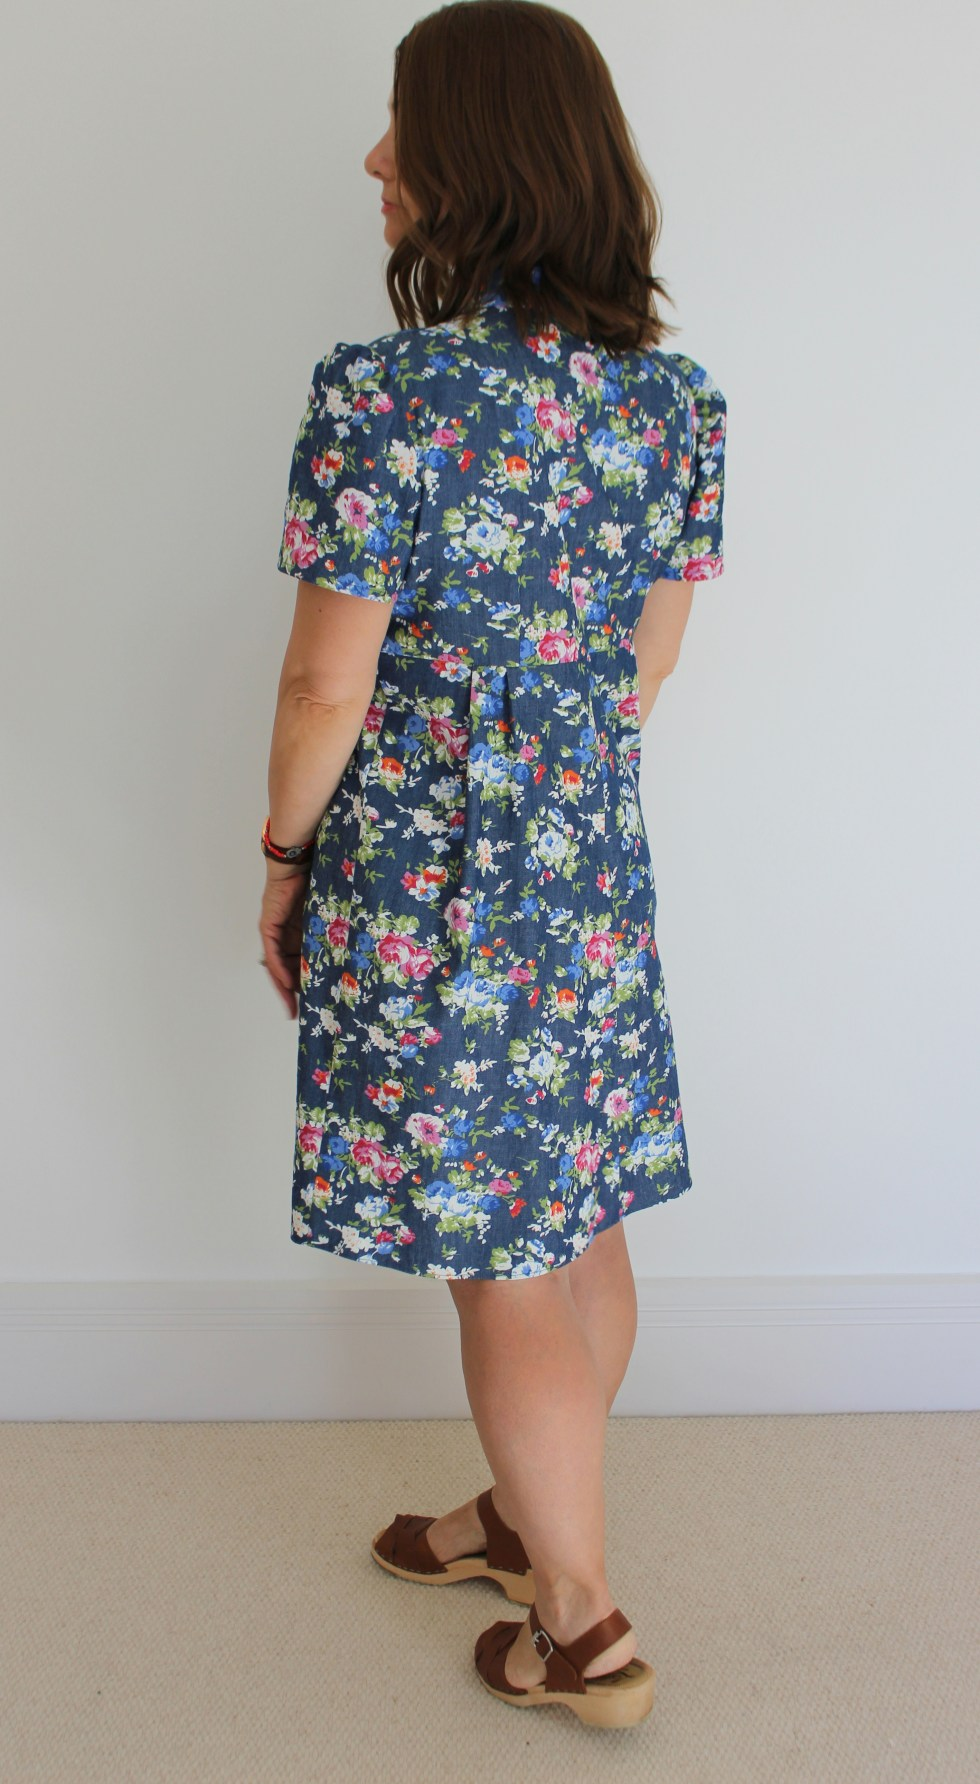 shirtdress20